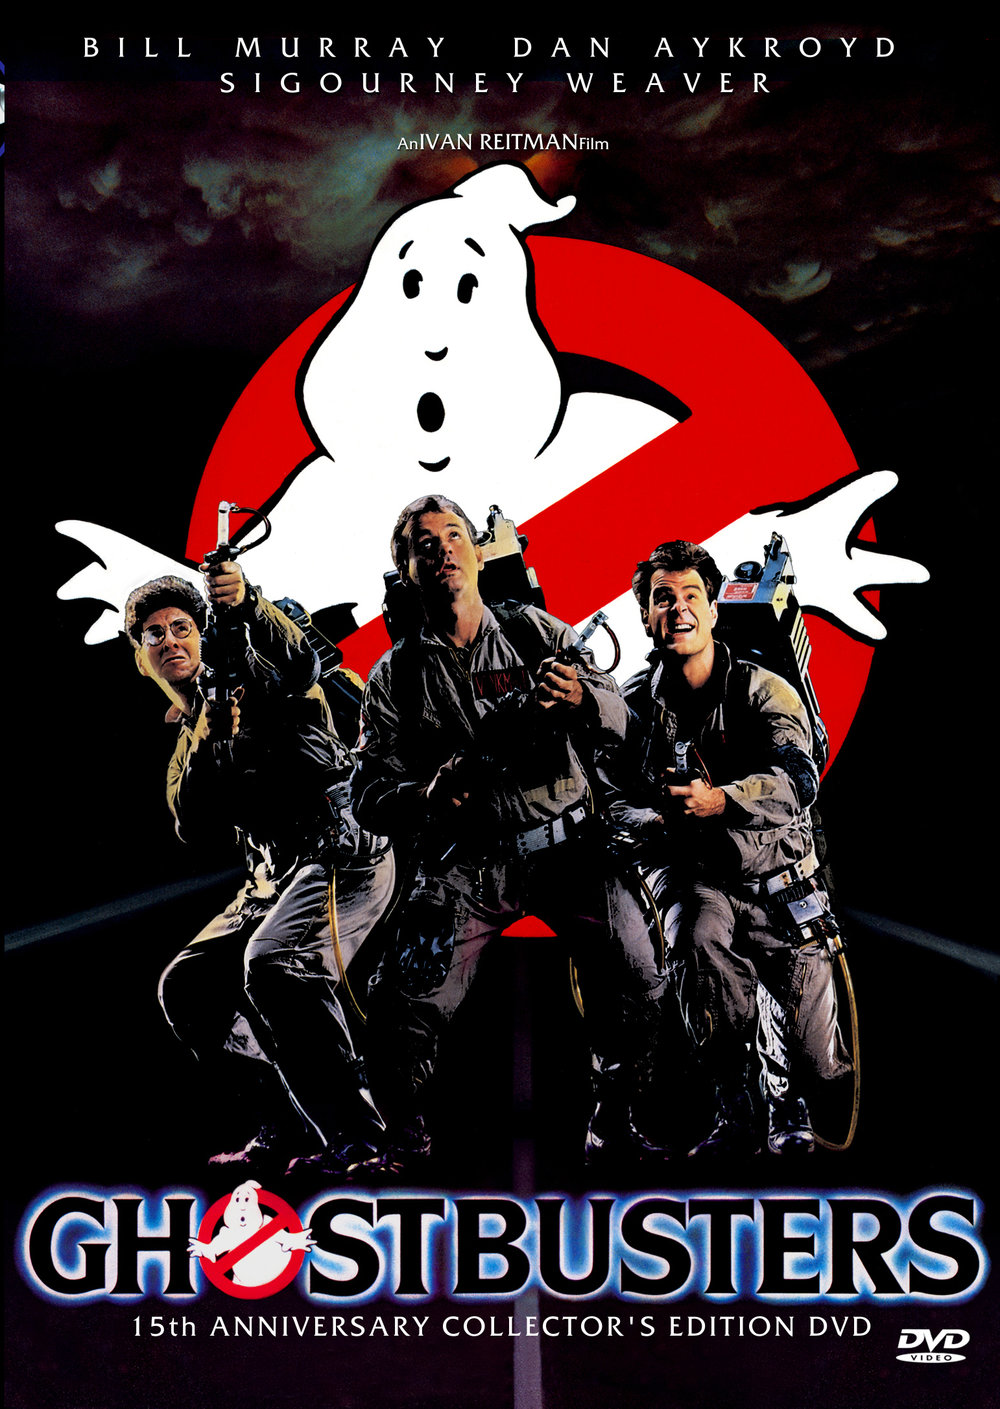 The 10 Best (Not Scary) Fall Movies - Ghostbusters